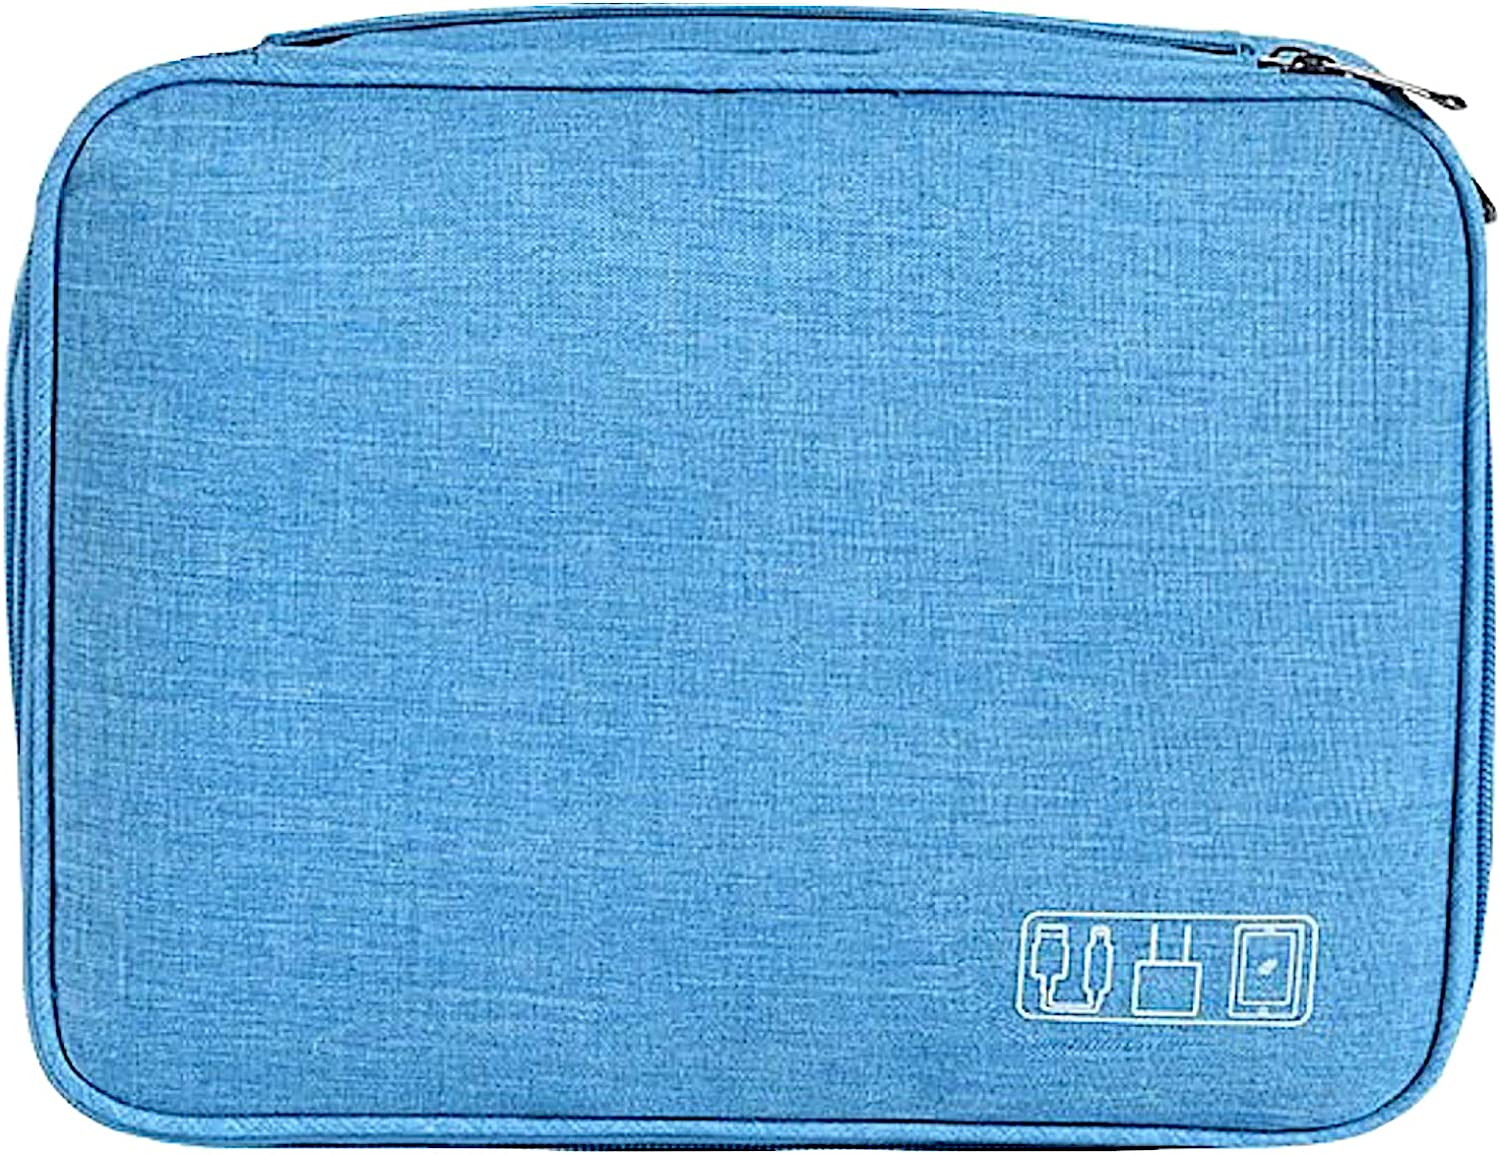 Electronics Organizer, Yanz Electronic Accessories Double Layer Travel Cable Organizer Cord Storage Bag for Cables, iPad Mini,Power Bank, USB Flash Drive and More Light Blue